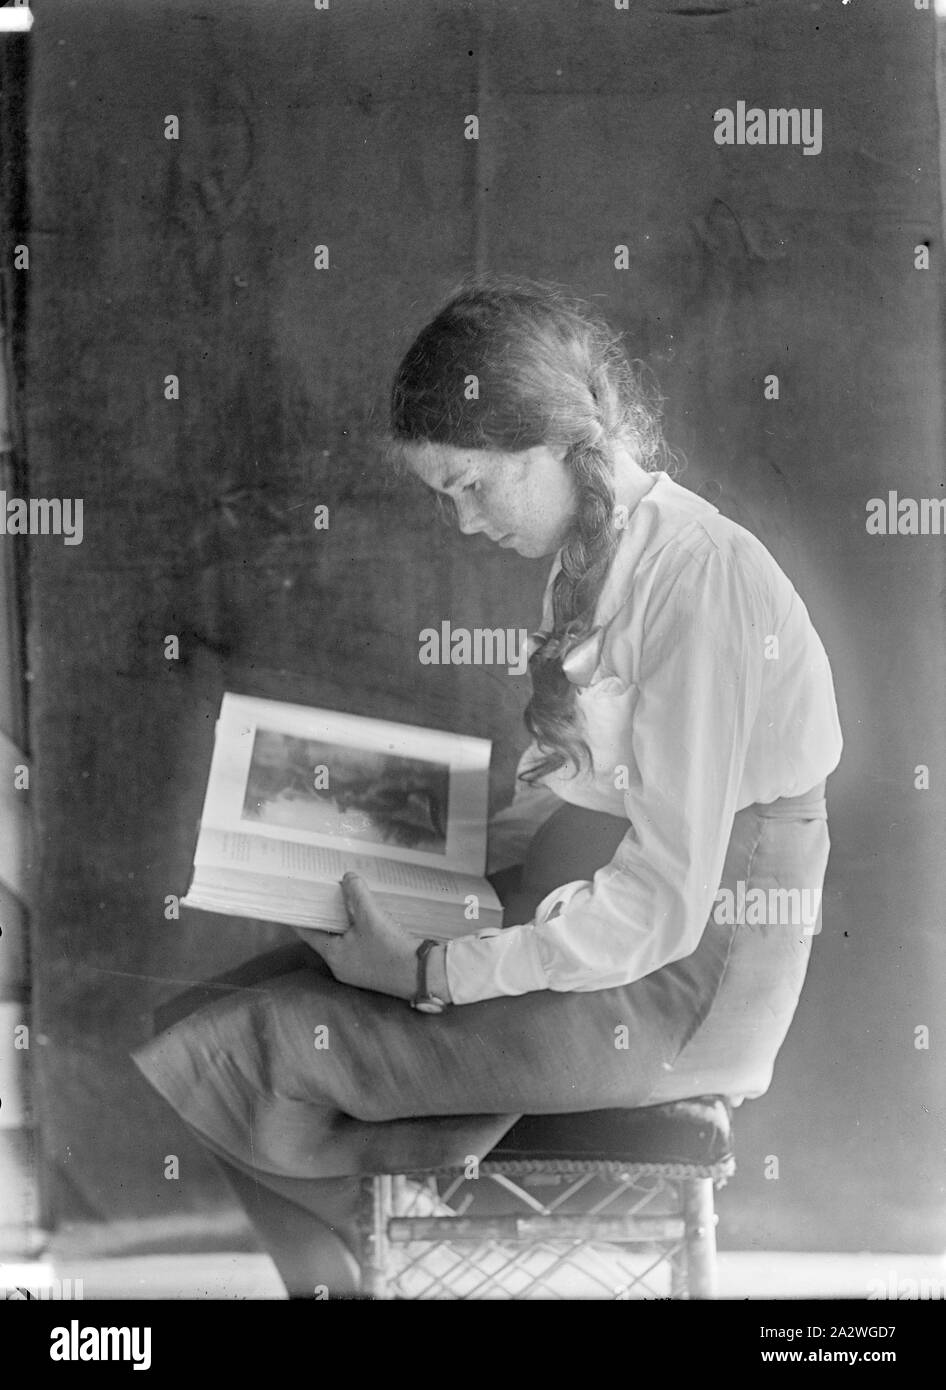 Glass Negative - Jean Wentworth Harvie Reading a Book, Melbourne, circa 1917, Glass plate negative portrait of Jean Wentworth Harvie, probably between the ages of 12 and 14 years. It is thought that this photograph was taken by her father, studio photographer, Robert Harvie. There is a similar photograph of her sister, Ellison Harvie. Robert William Harvie was a professional photographer who, with his business partner Albert Stock Photo